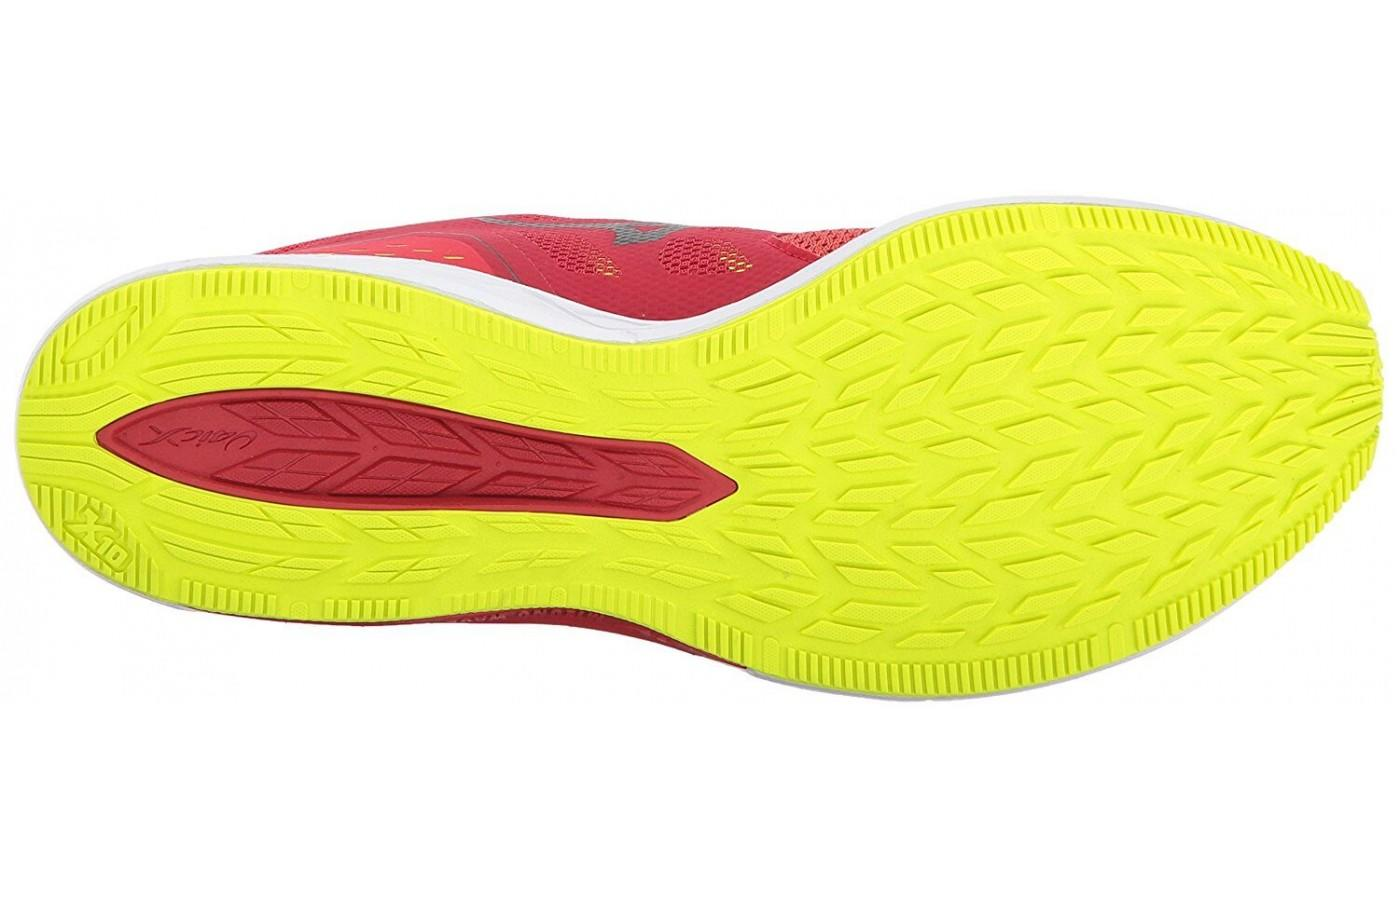 Mizuno Wave Sonic features blown rubber in its outsole